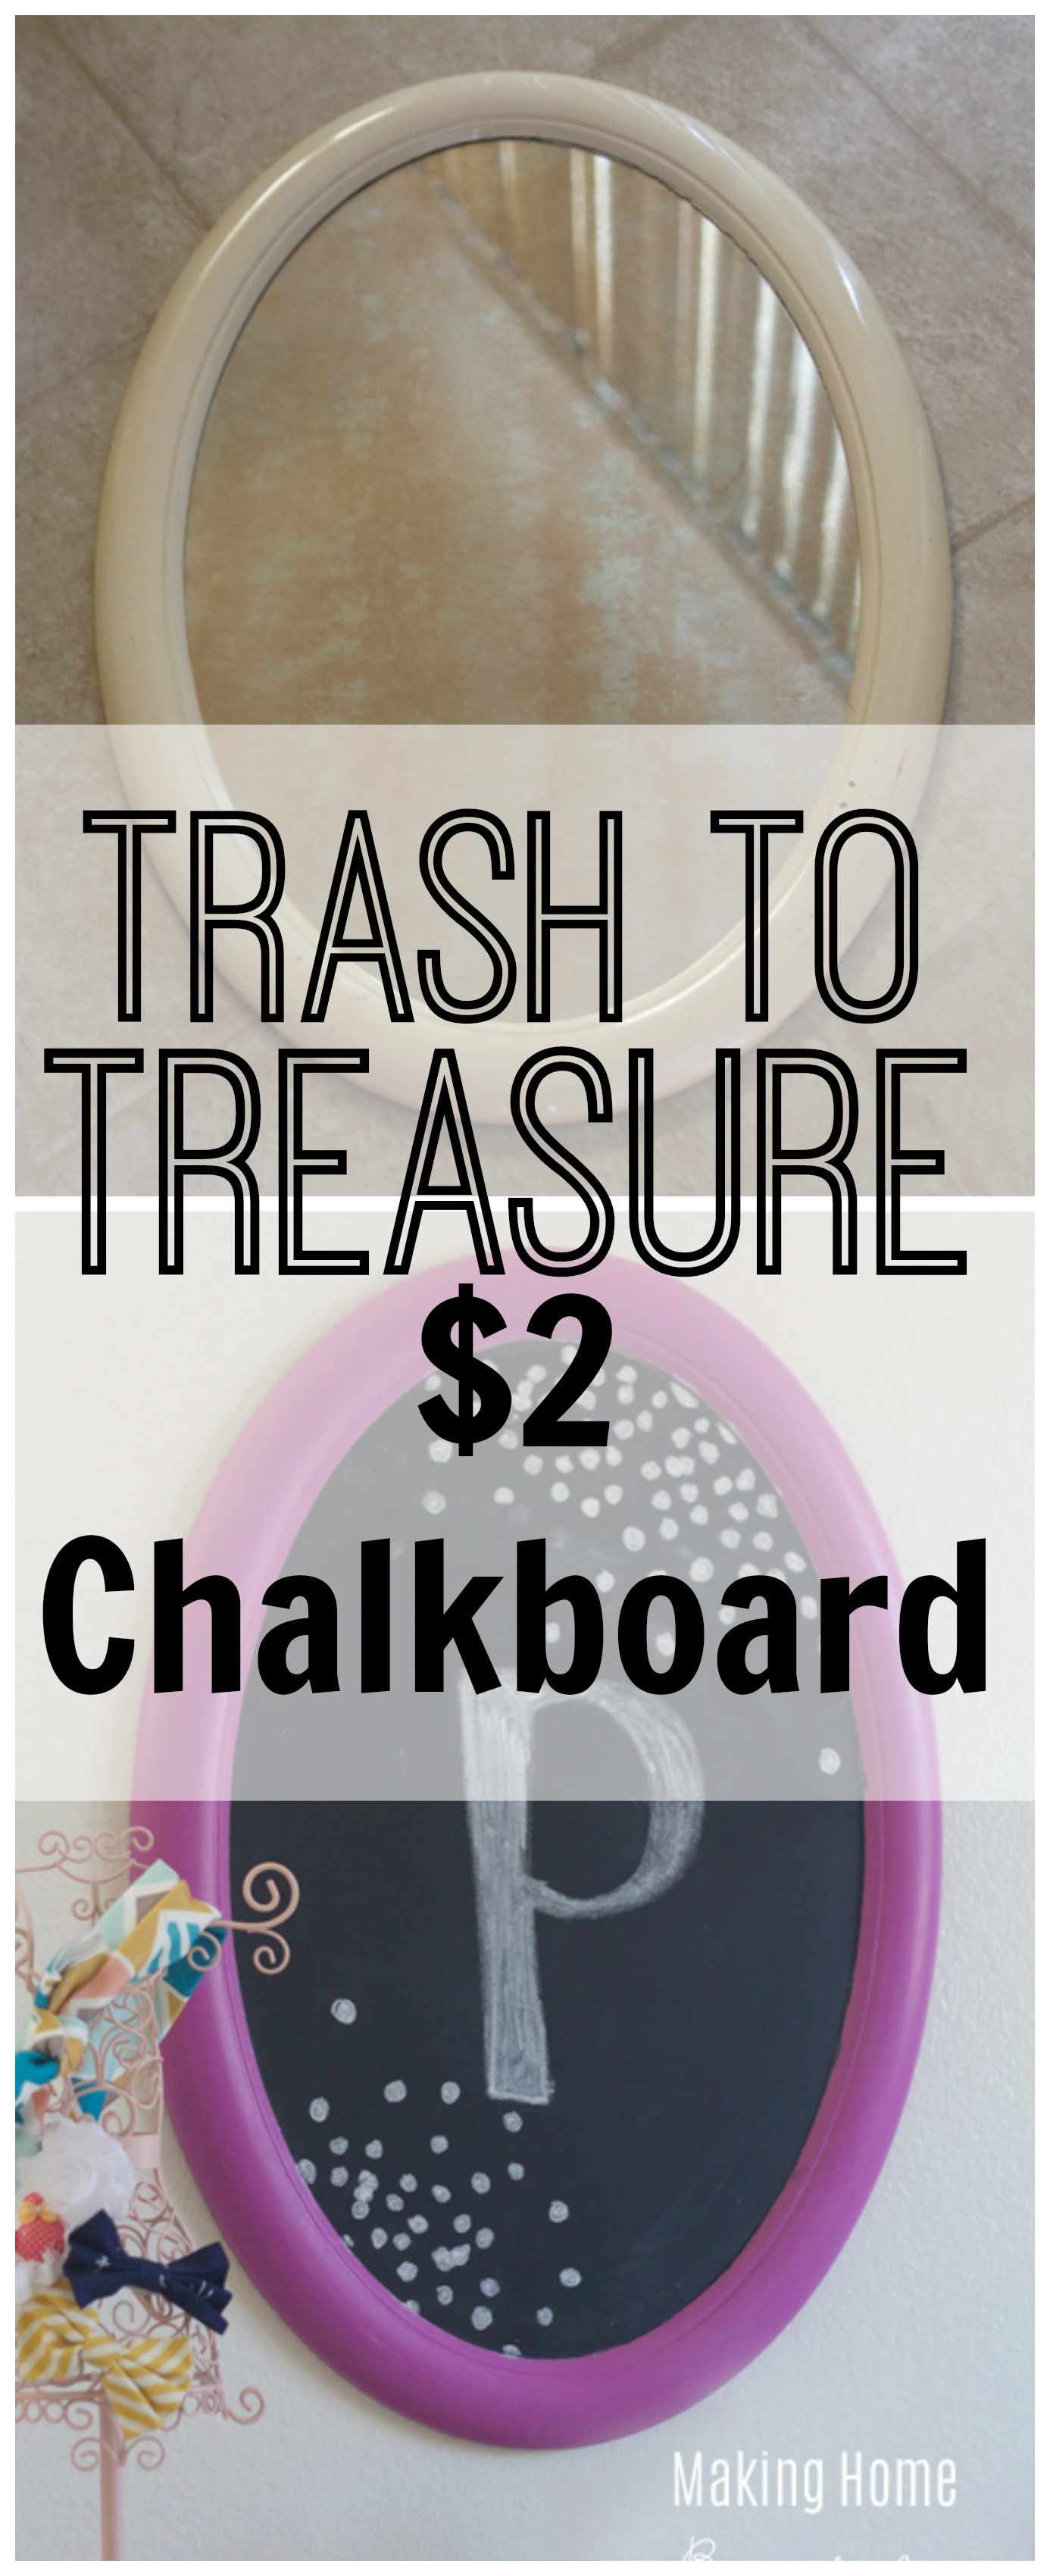 trash to treasure chalkboard for a girls room